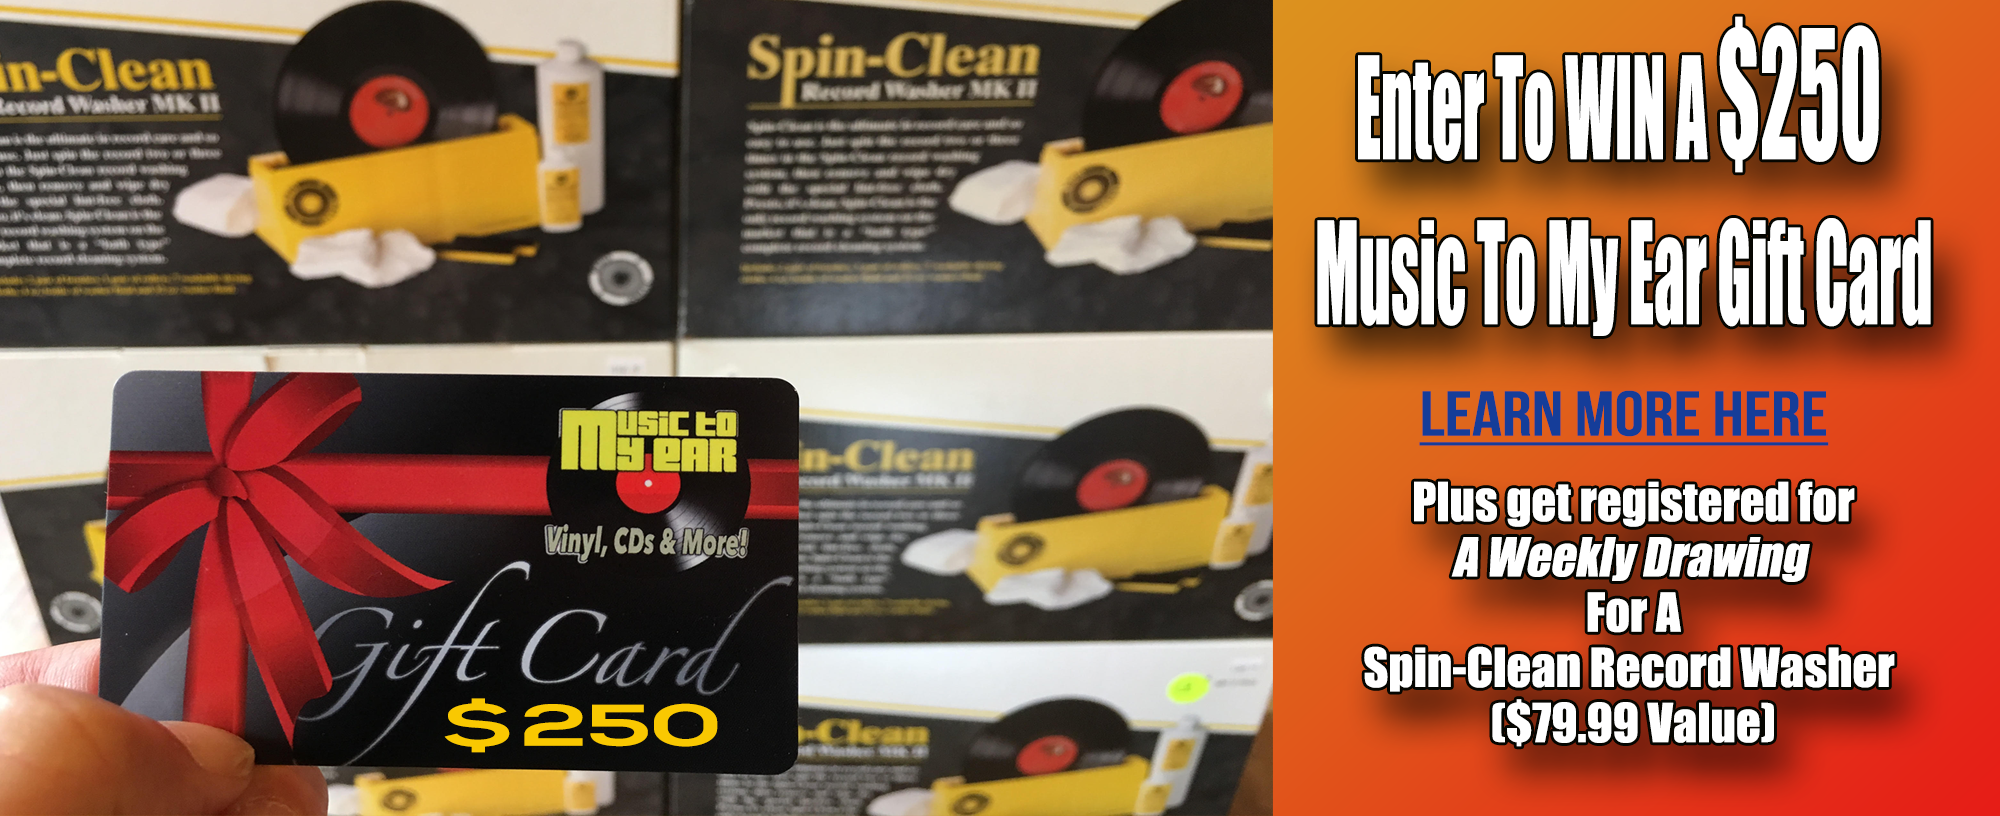 Enter To Win A Spin-Clean Record Washer and a $250 Music To My Ear Gift Card